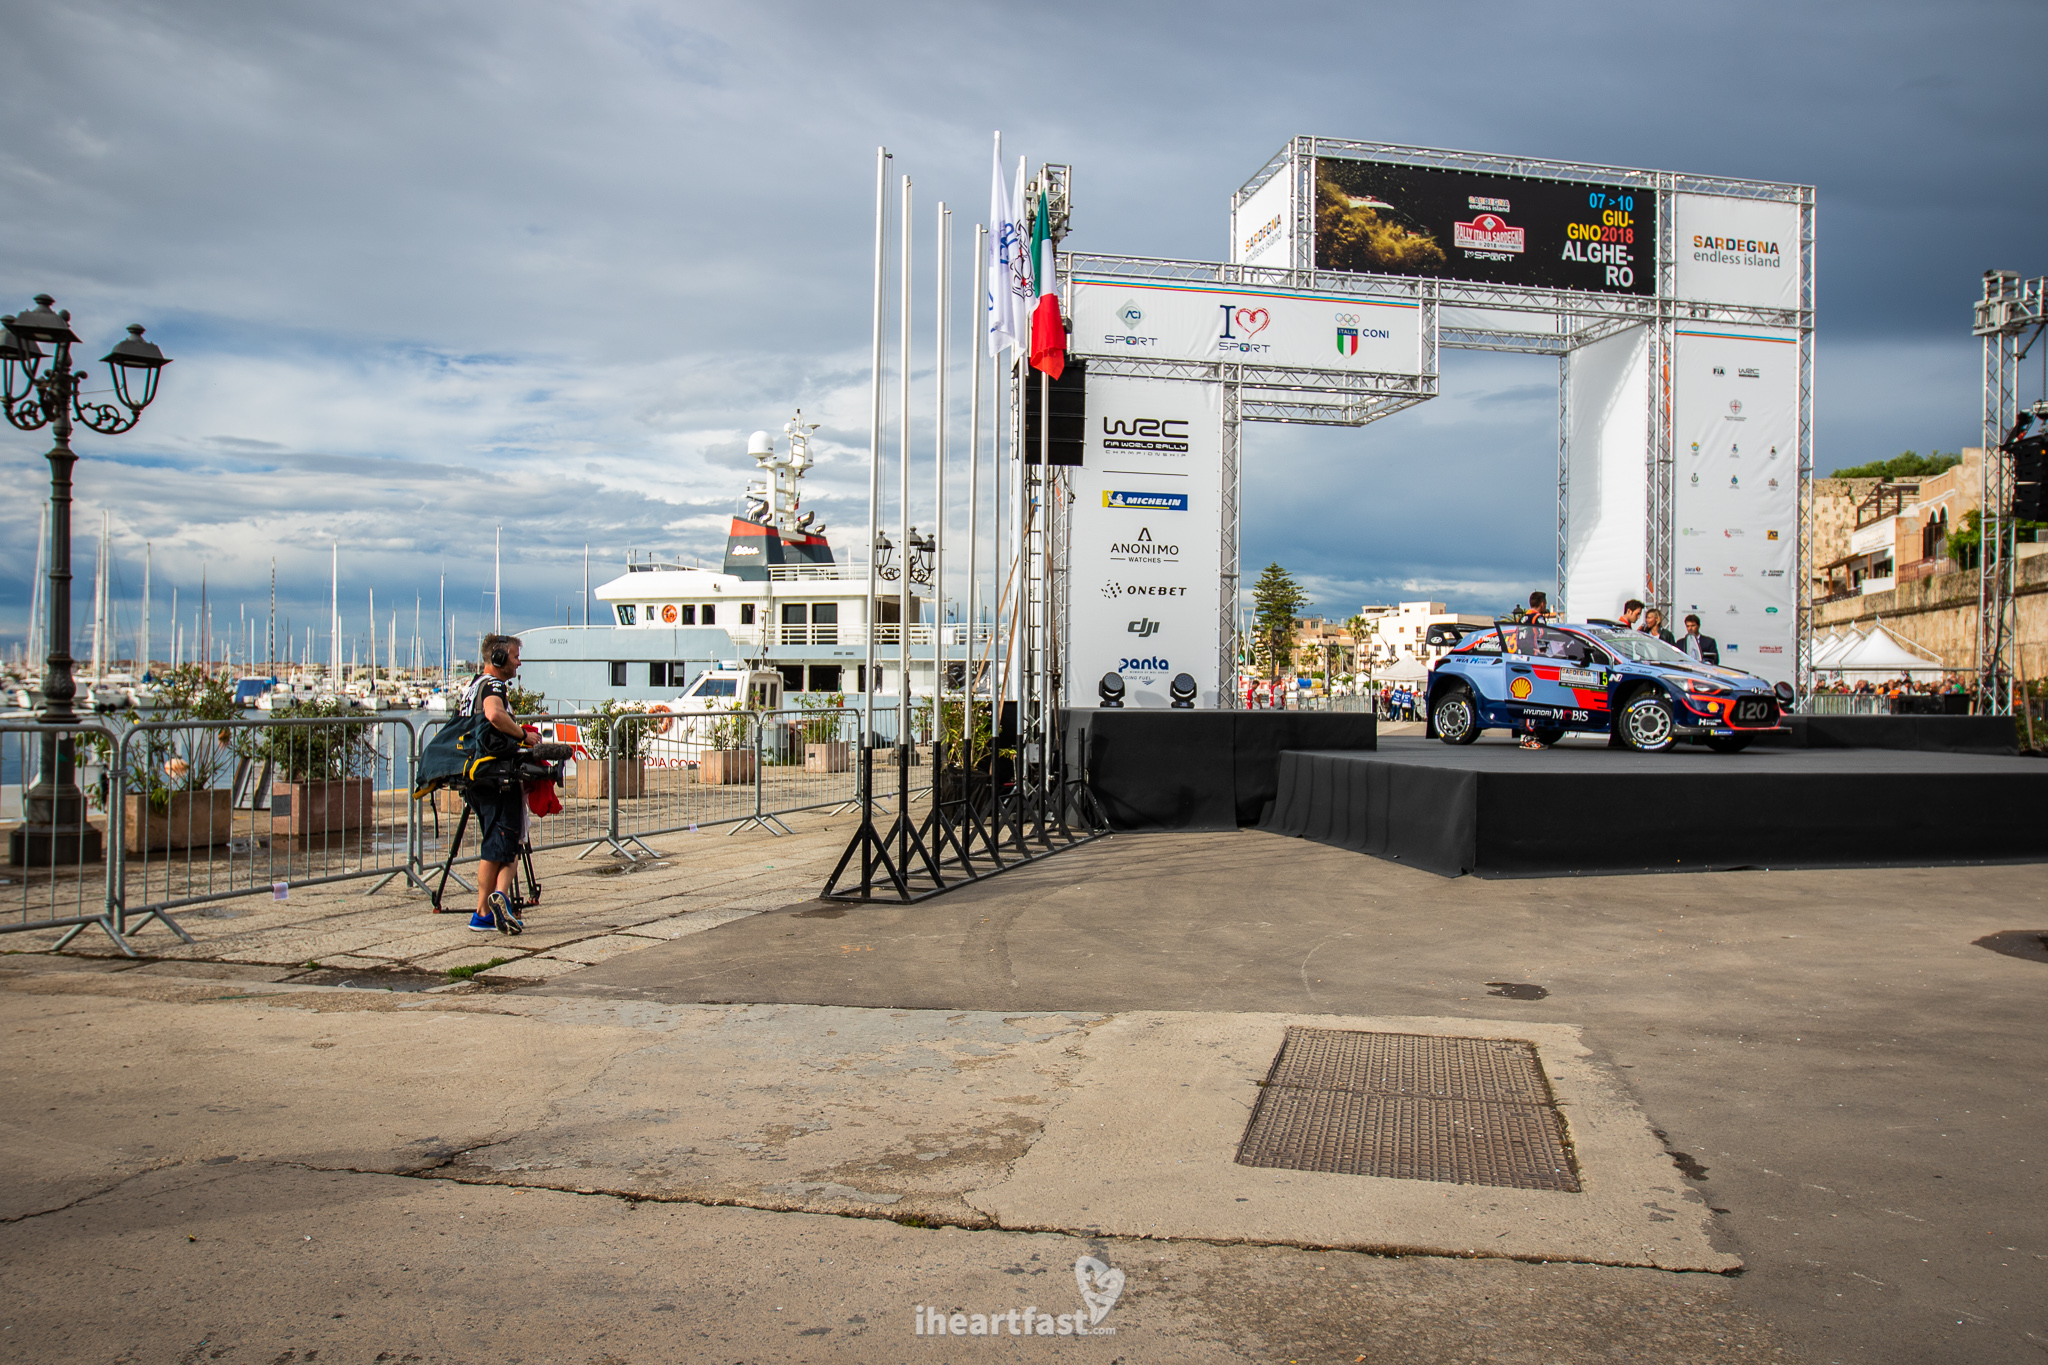 Ceremonial start in the port of Alghero